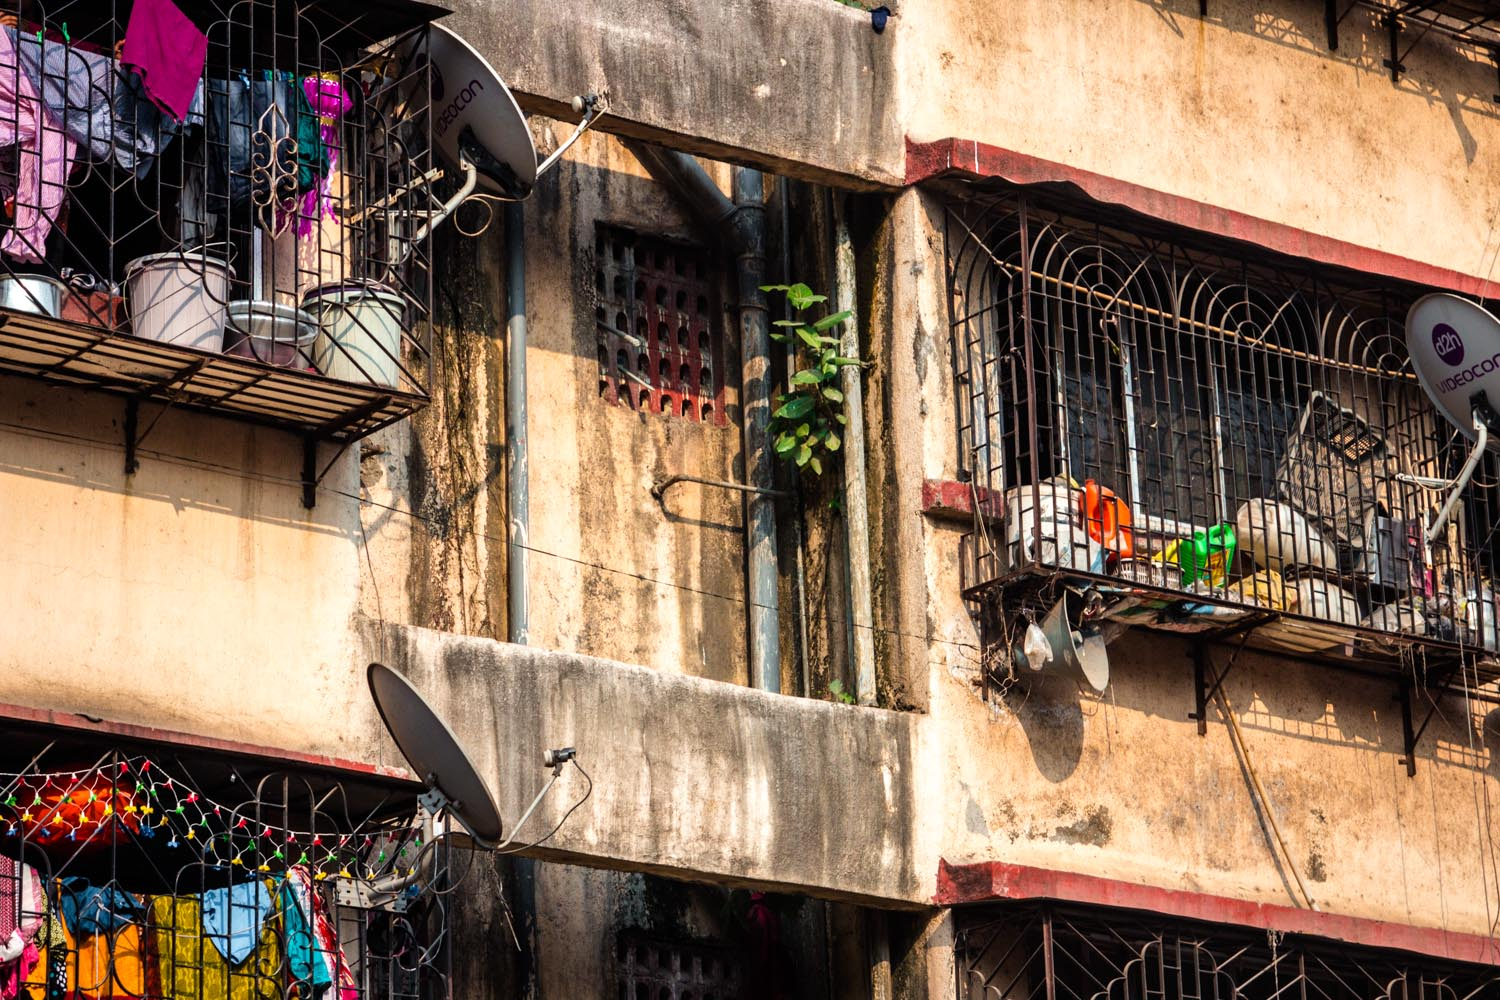 Mumbai dwellings